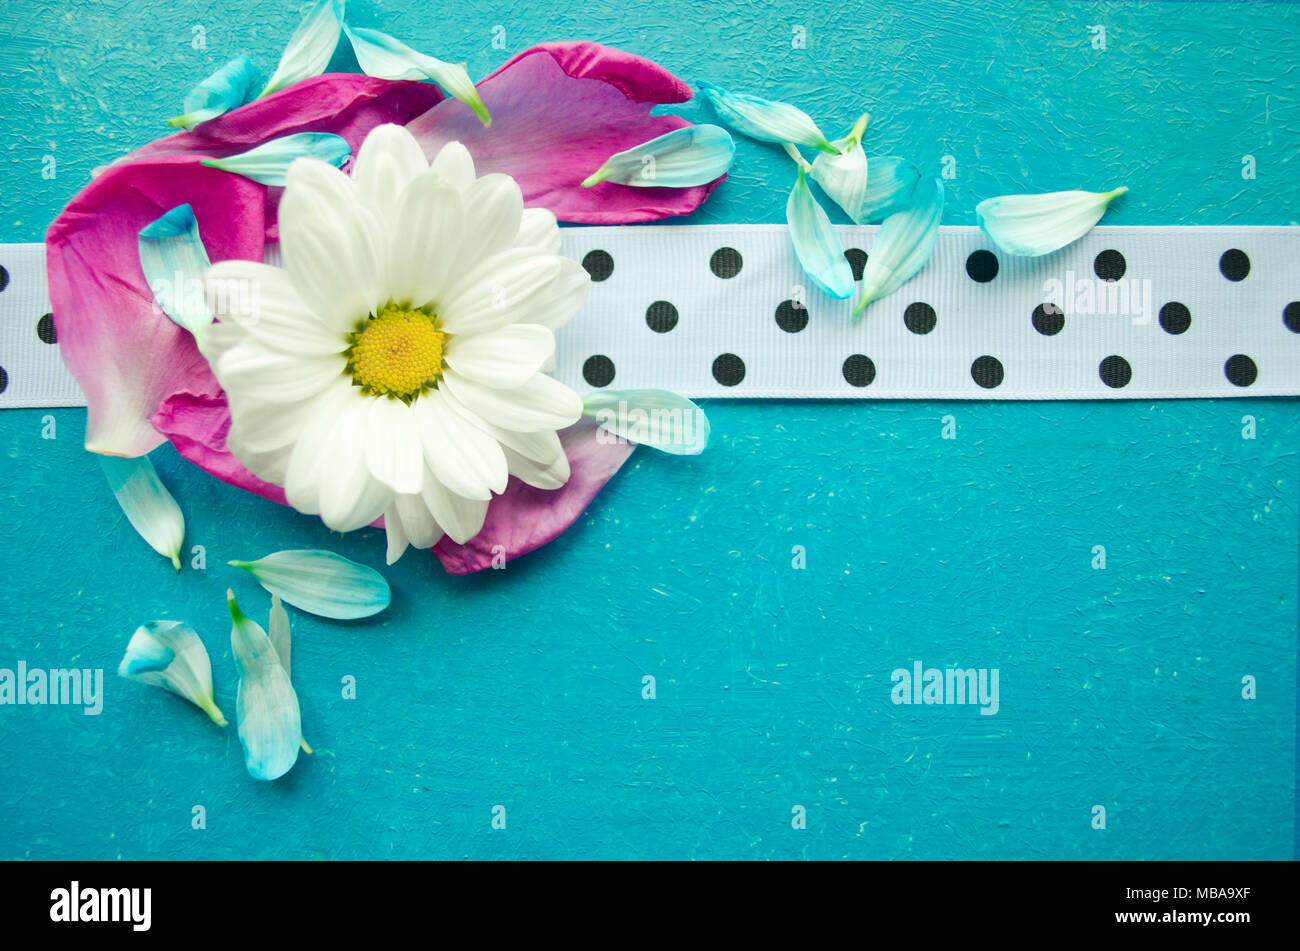 Wooden turquoise surface with chamomile, colorful flower petals and white spotted ribbon. Beautiful template for your design. - Stock Image